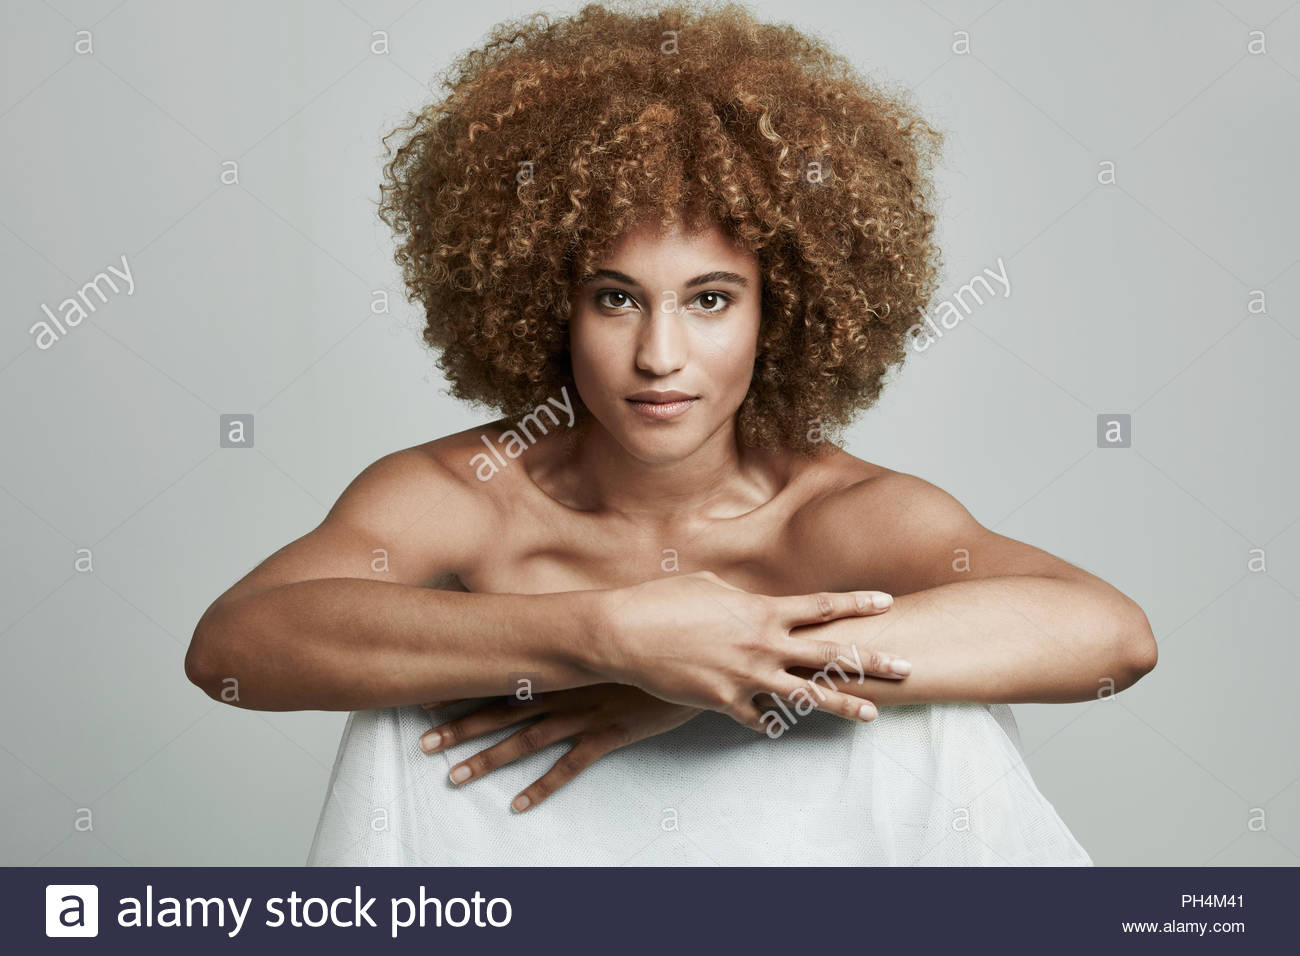 Young woman with afro - Stock Image